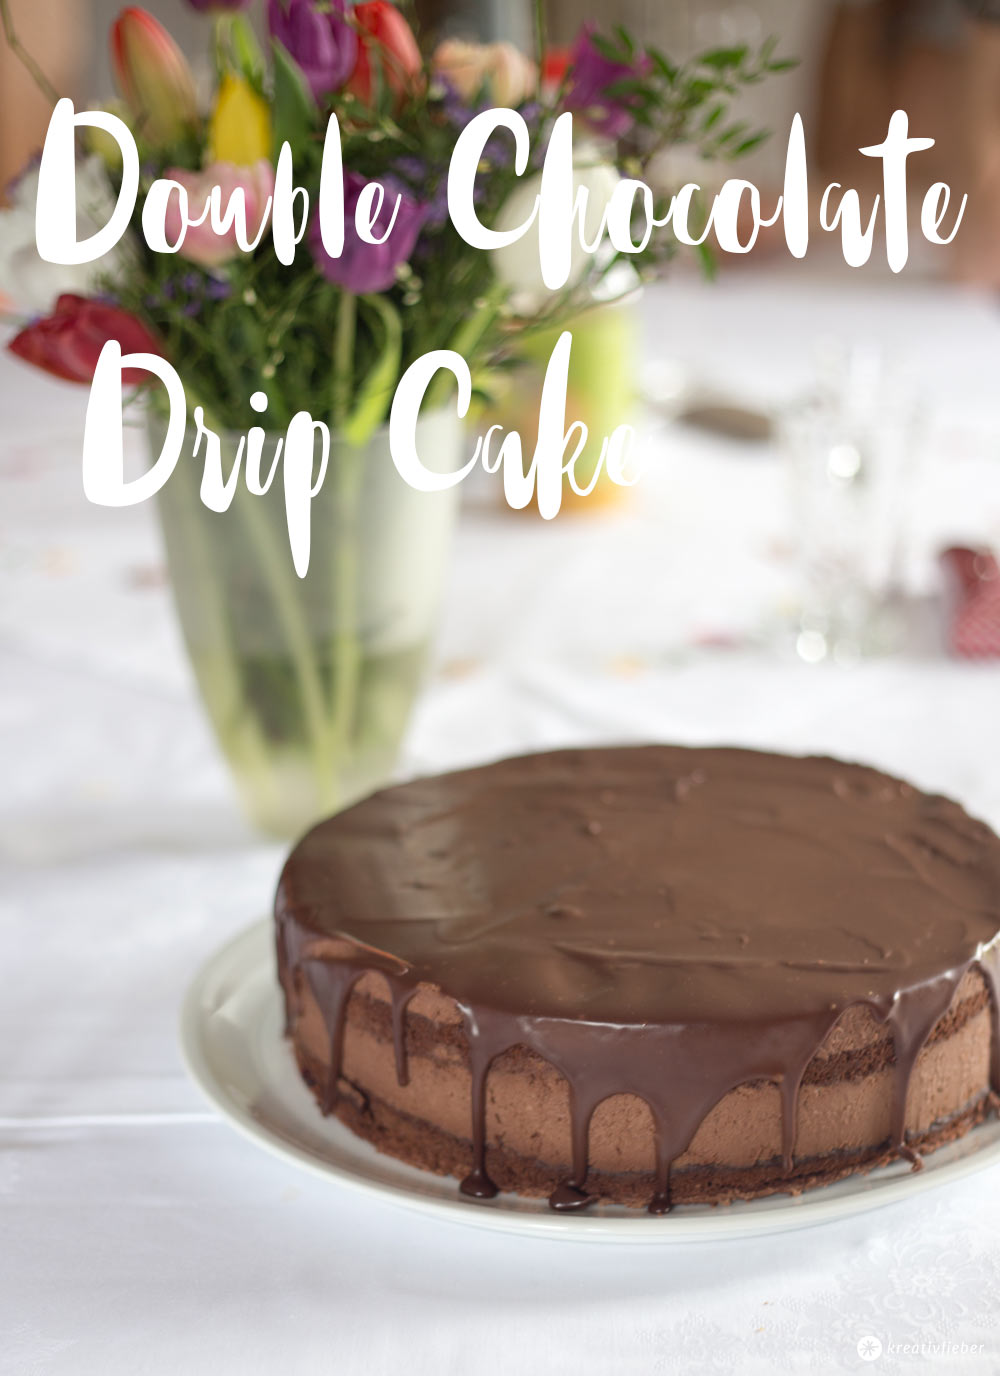 Double Chocolate Drip Cake - Schokocremetorte backen